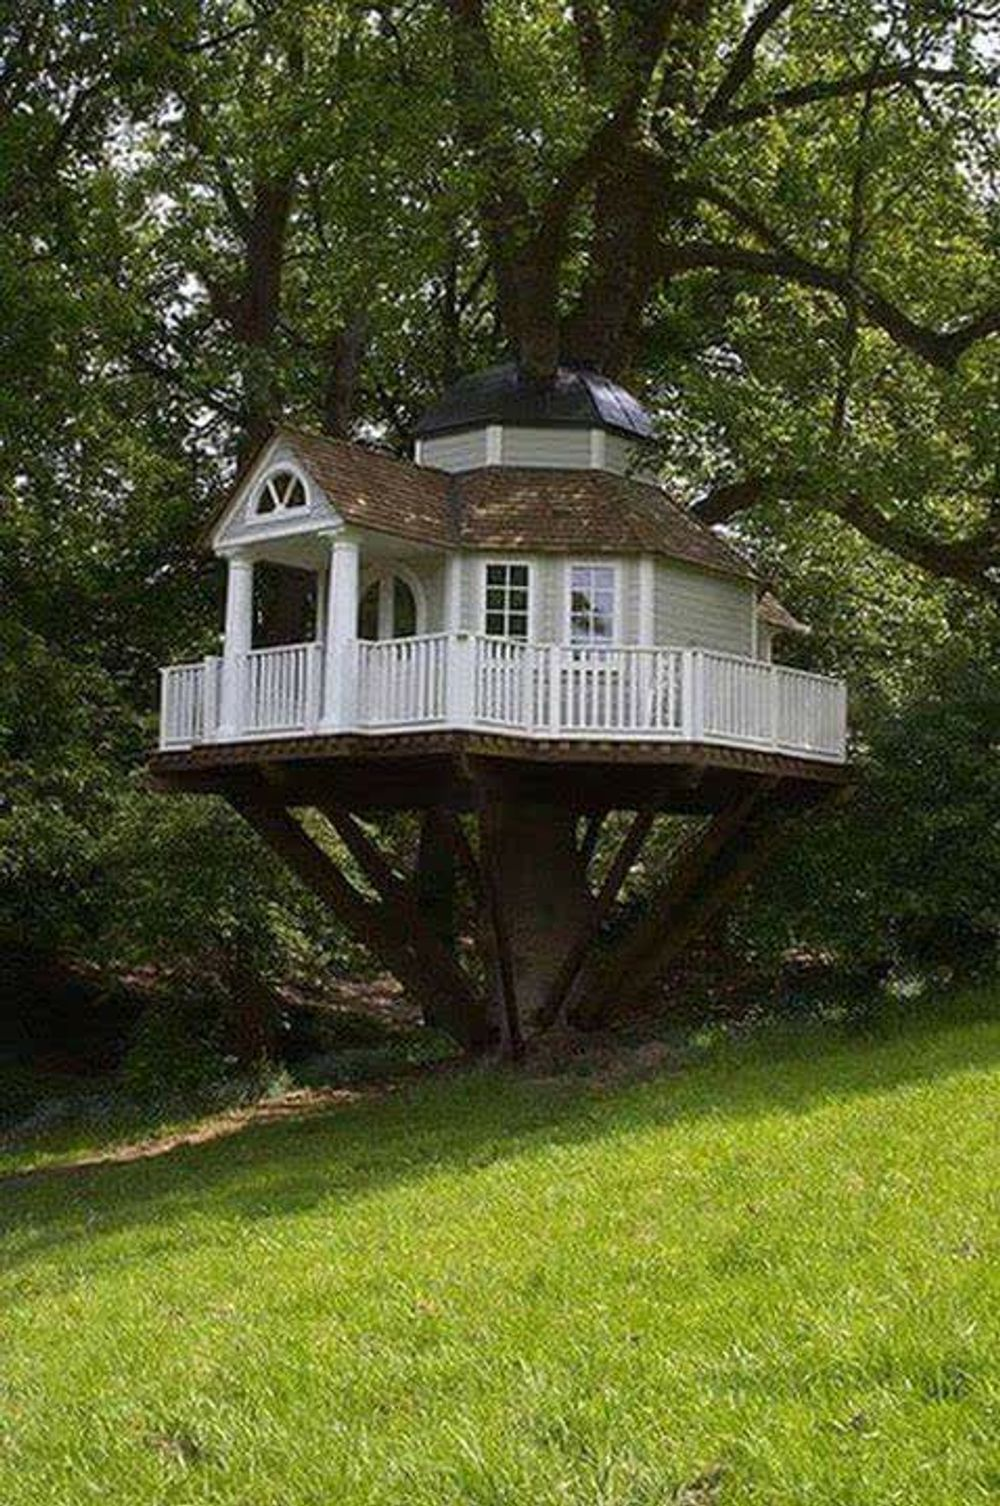 title: Tree House from around the world